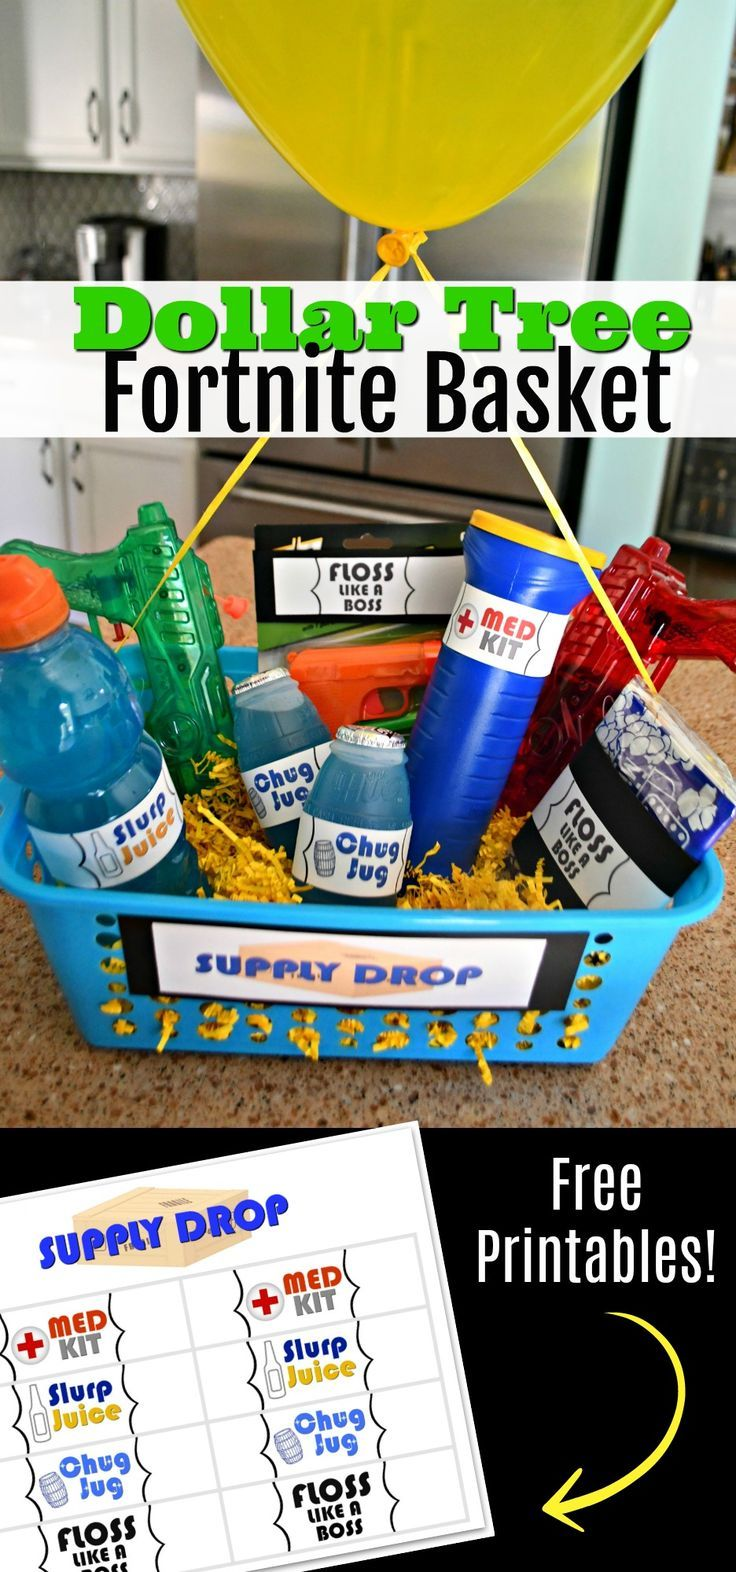 Make your own Supply Drop gift basket using our FREE